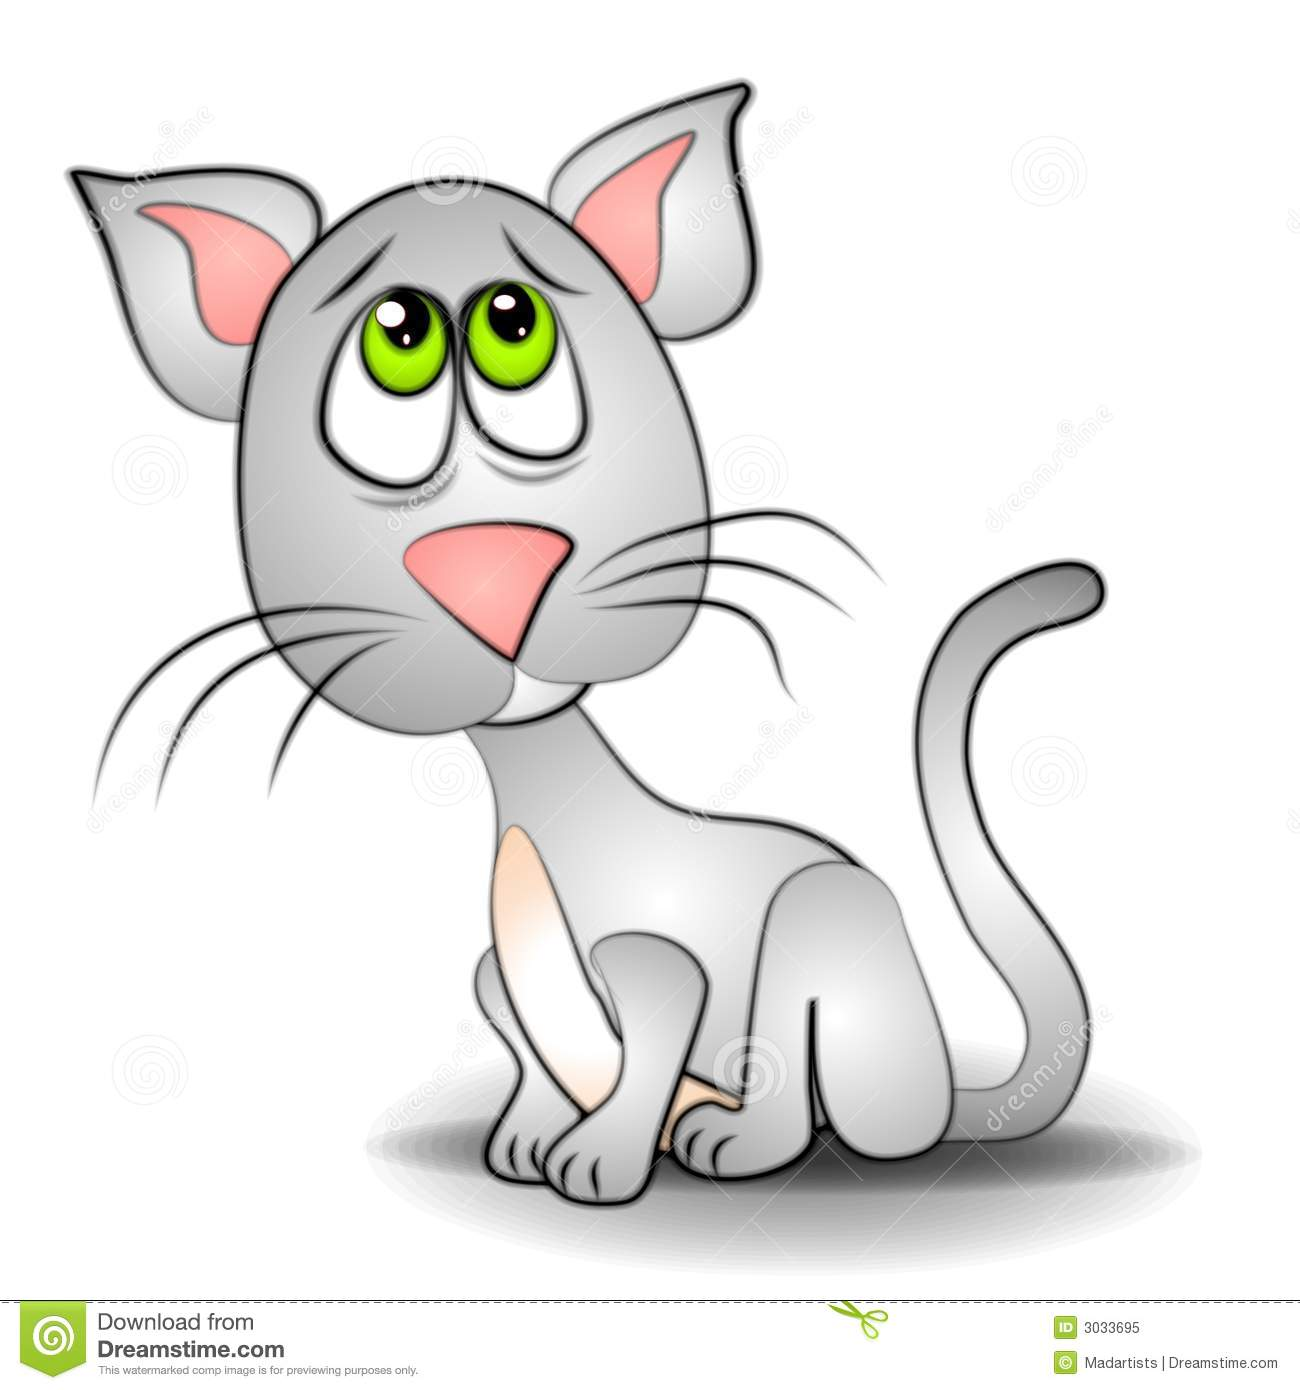 Clipart ktty with big eyes png black and white library Sad Eyes Cat Kitten Clip Art Royalty Free Stock Photo - Image: 3033695 png black and white library